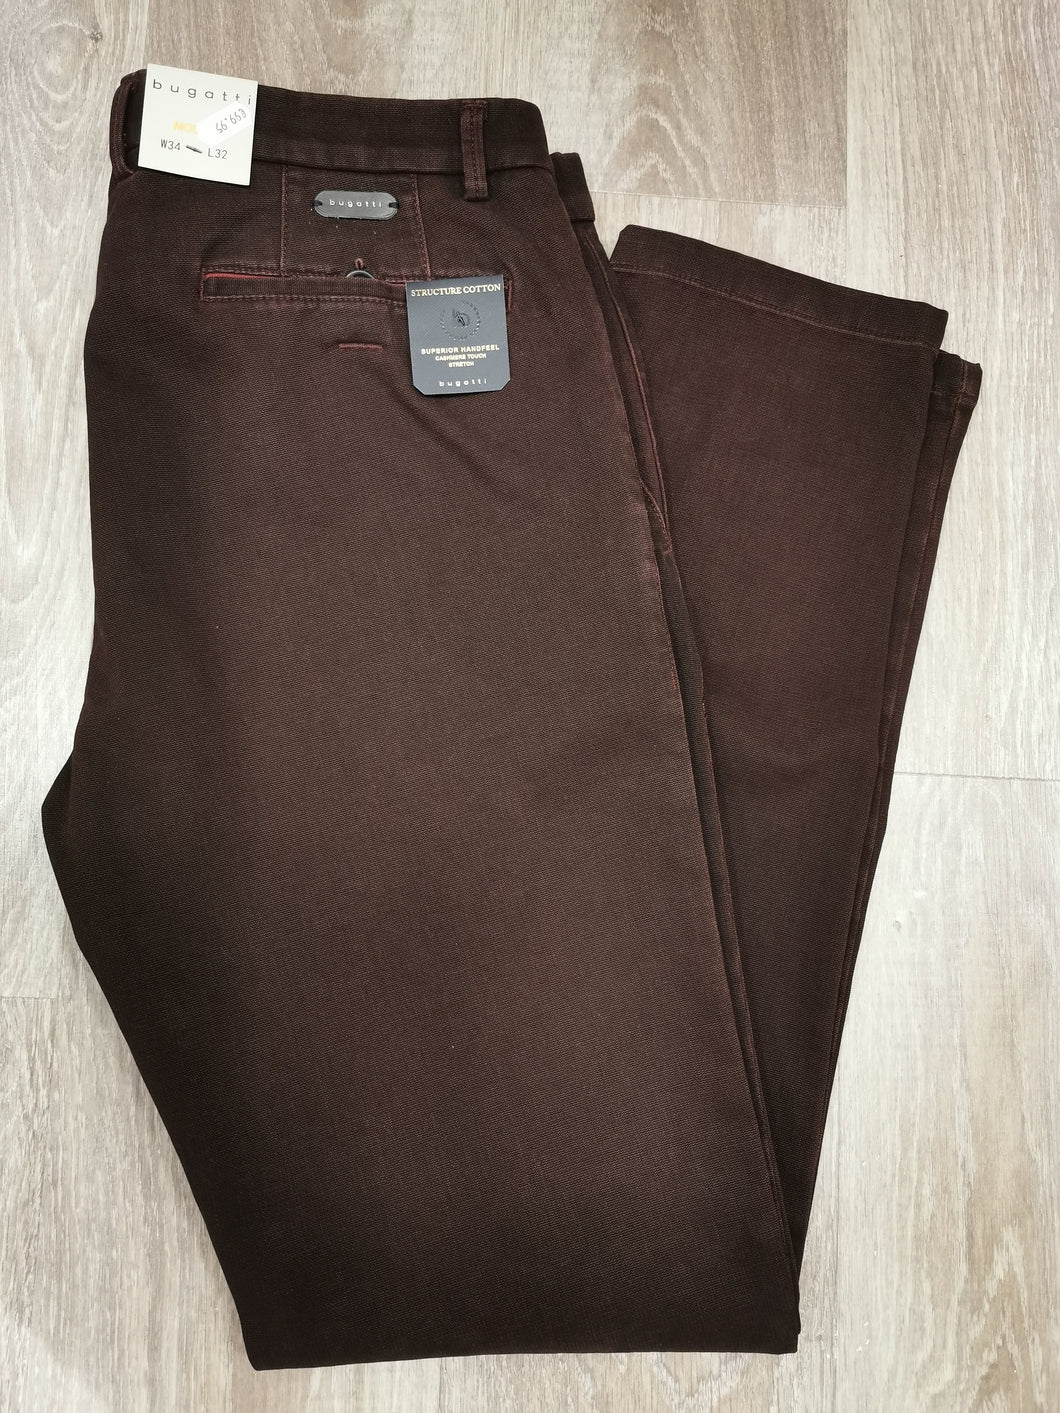 Bugatti - Modern Fit Chino In Bordeaux - Tector Menswear